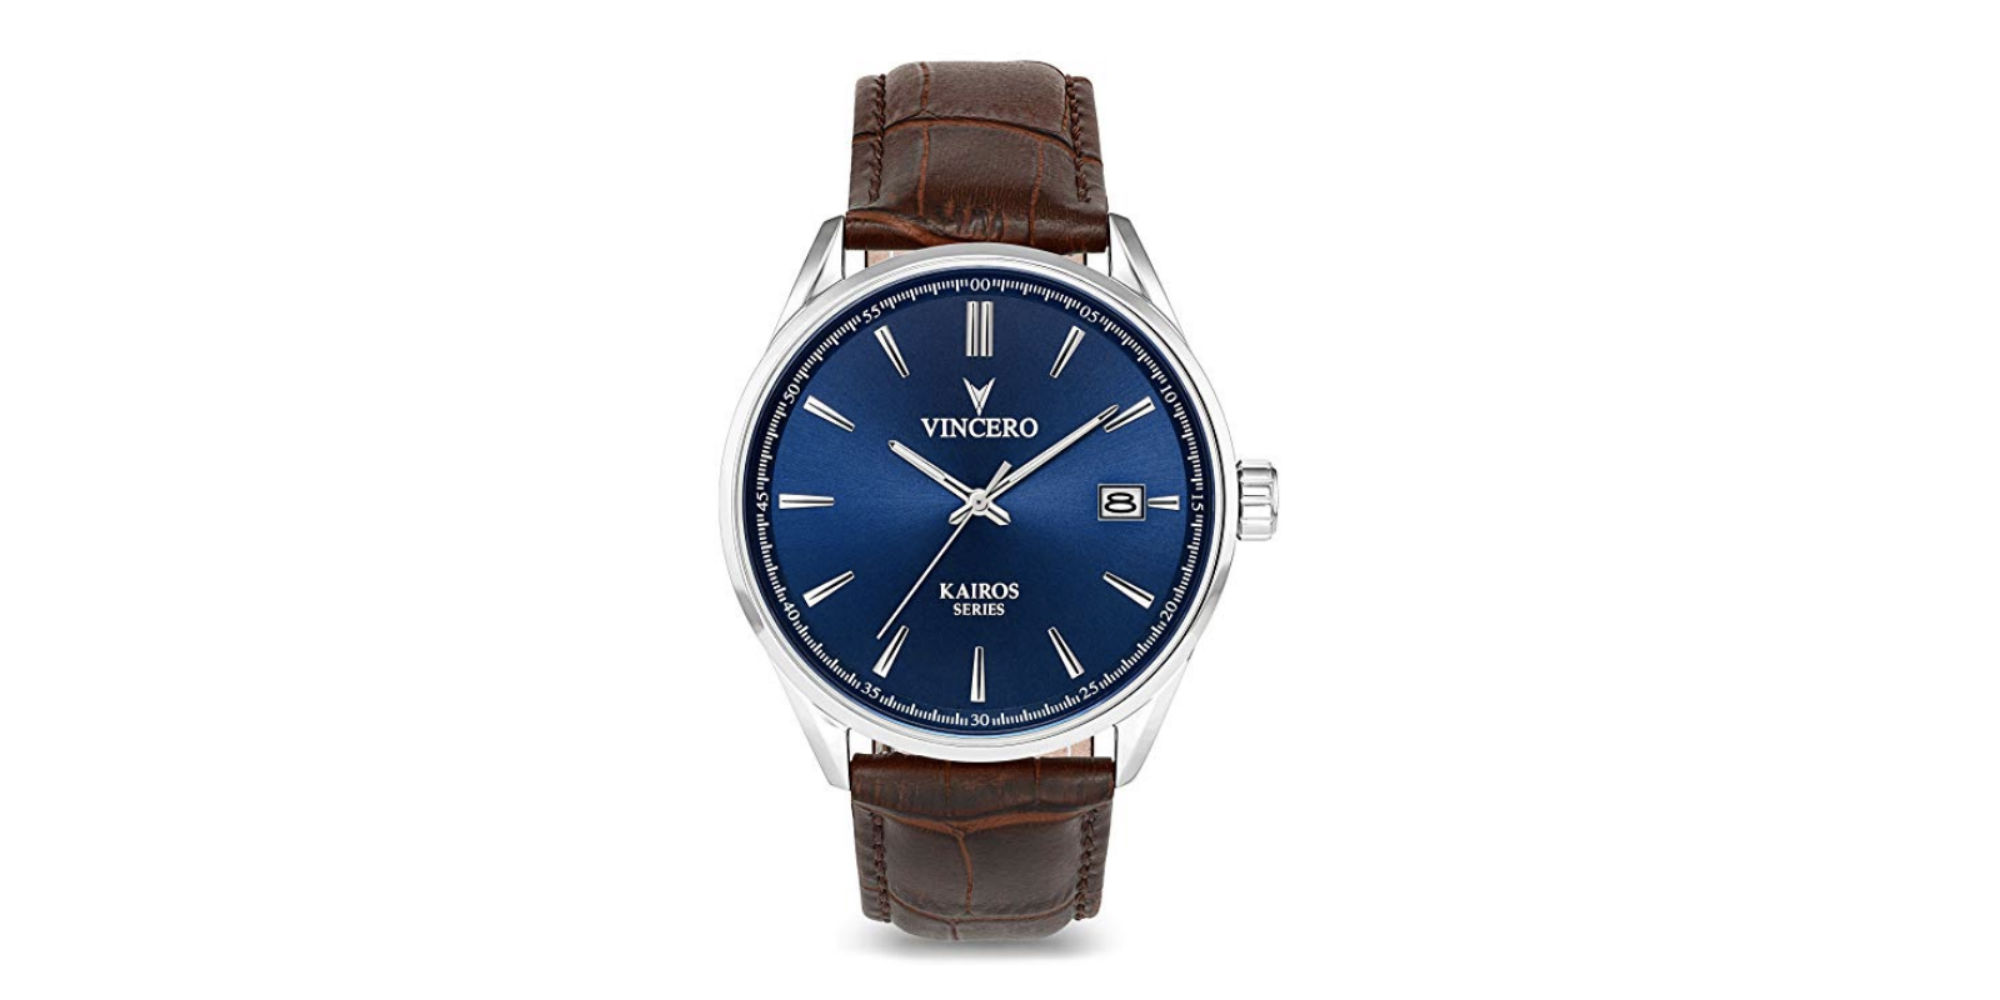 10 Watches to Buy for a Bargain | Inverse